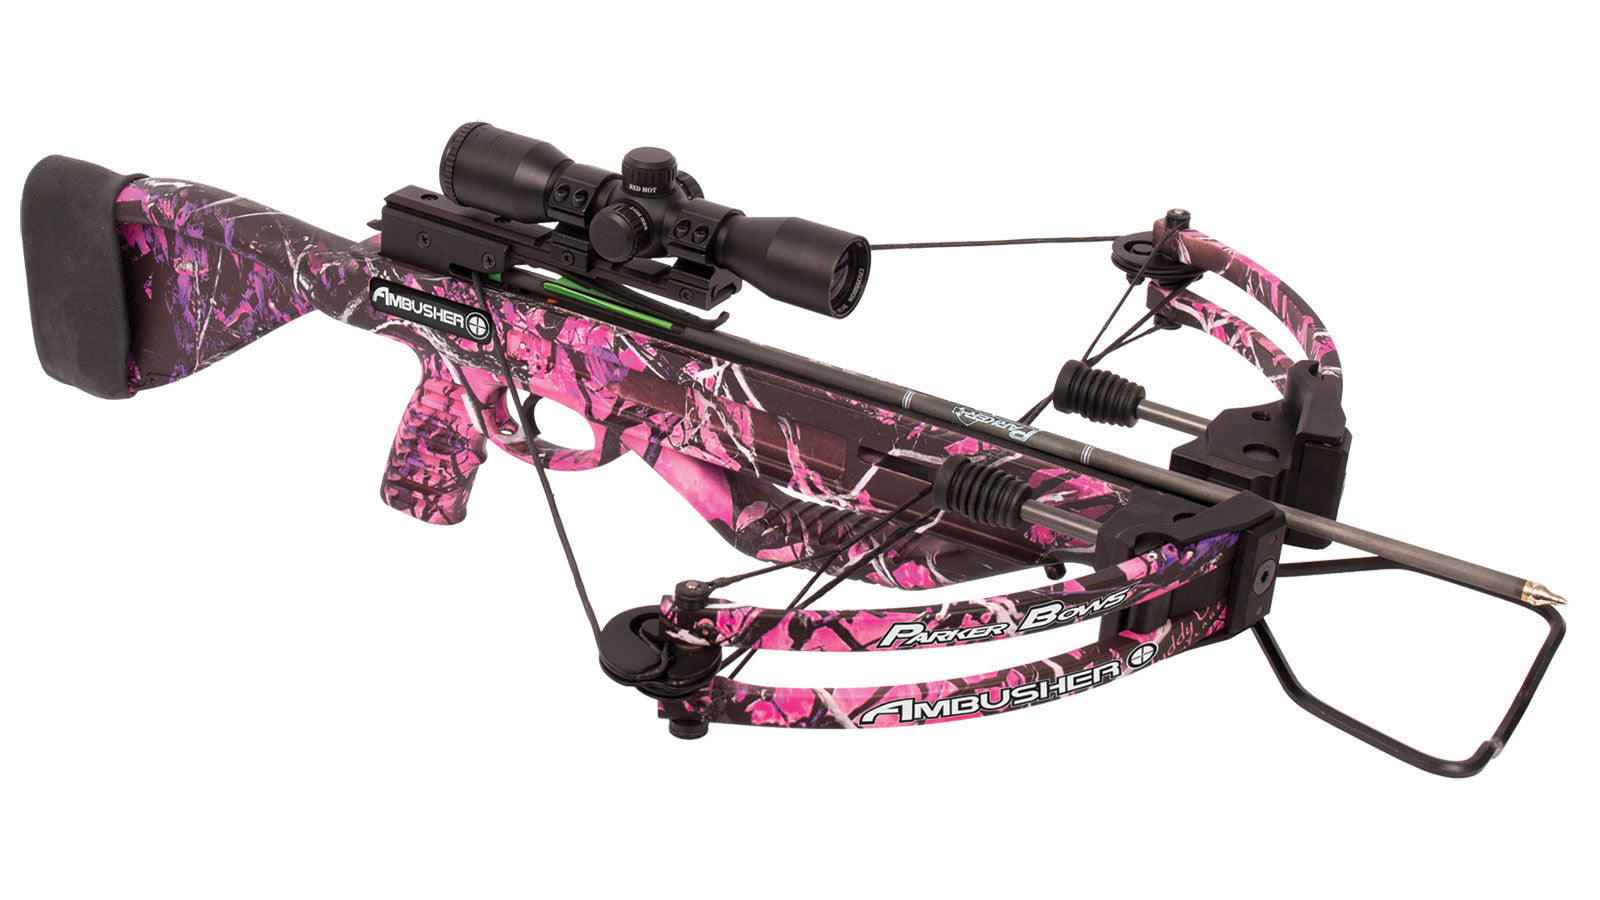 Parker Bows Ambusher Pink Crossbow Package - 3X Multi-Reticle scope